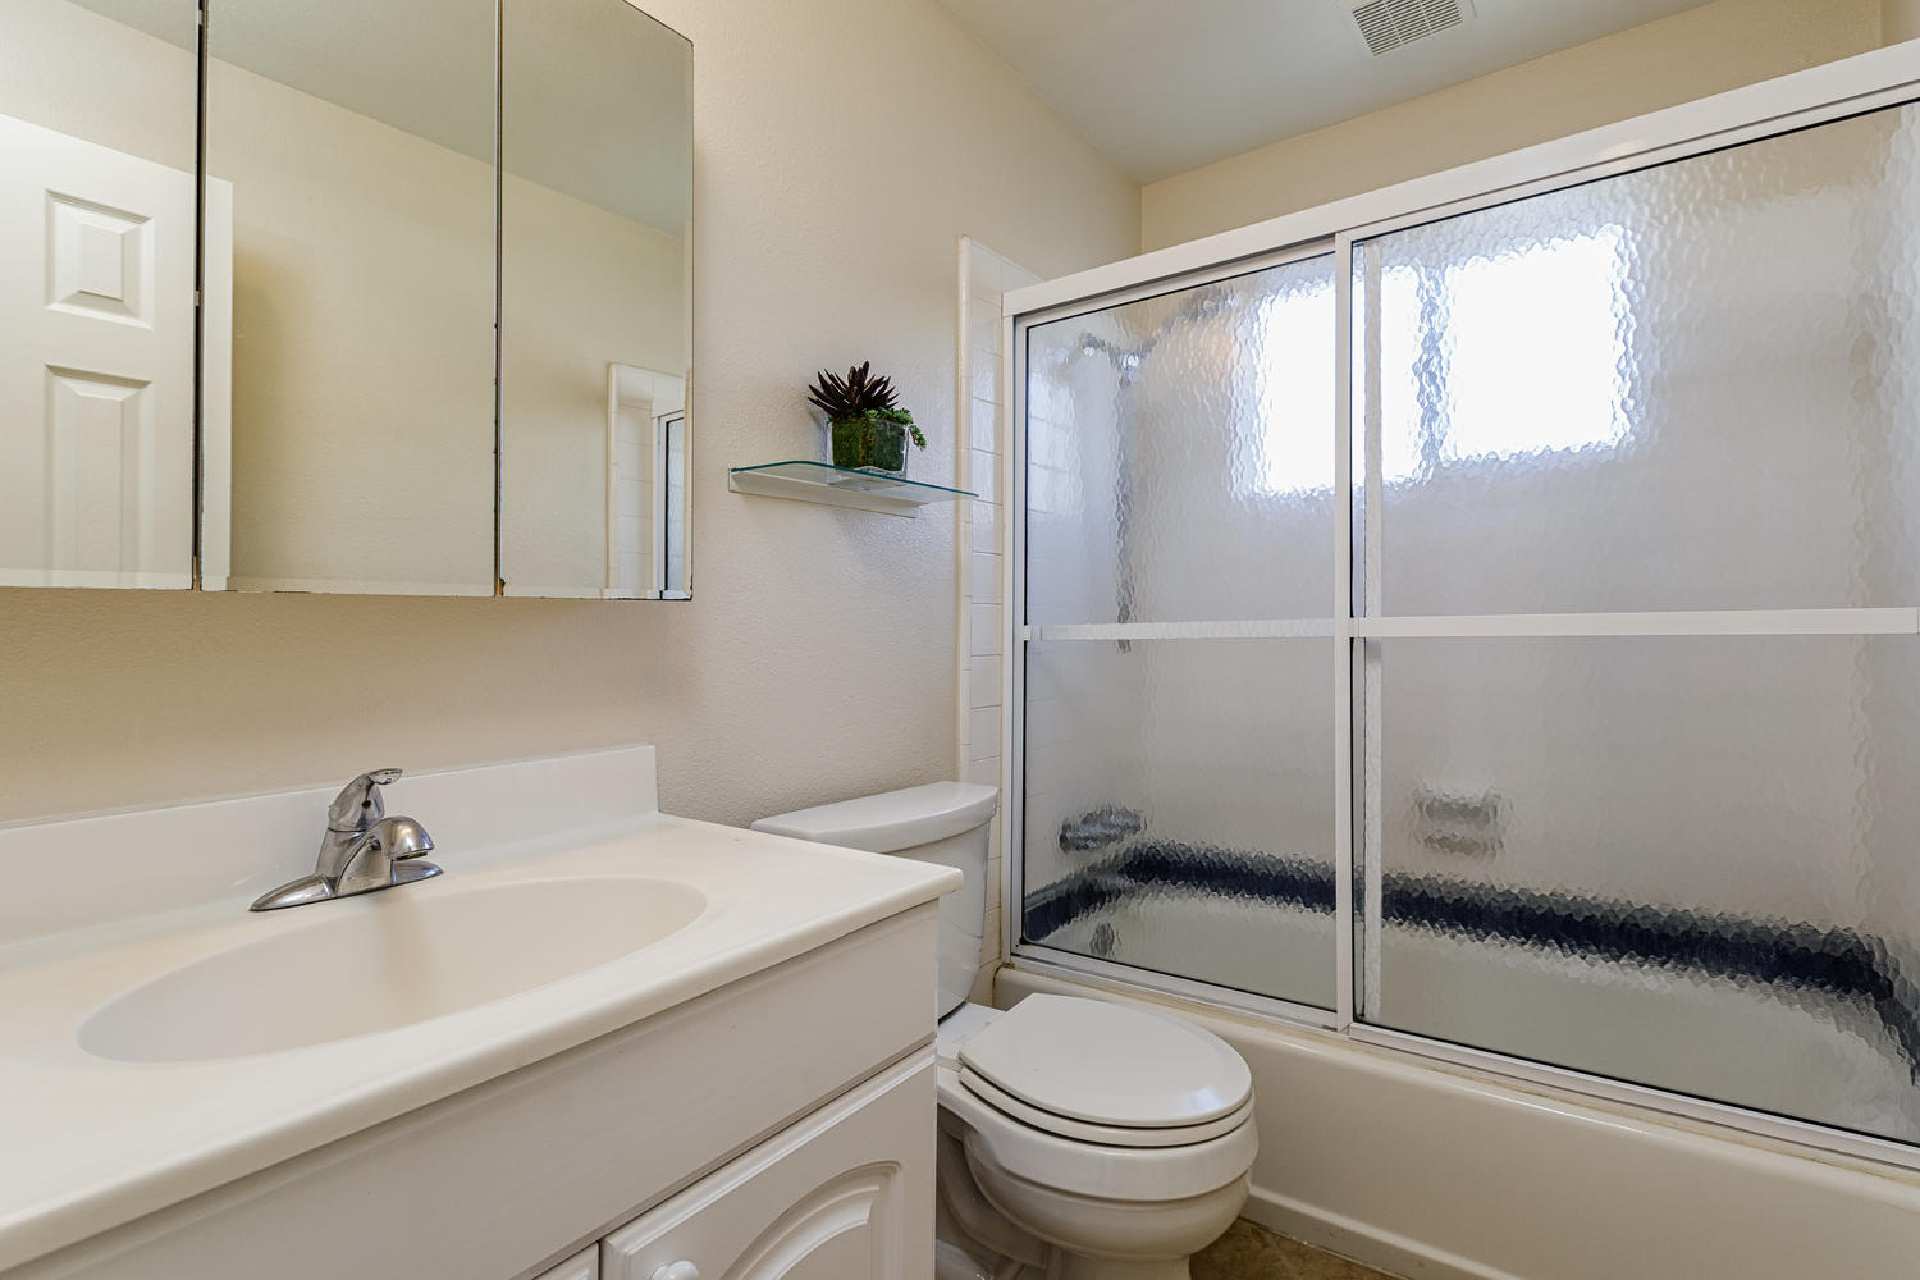 http://www.addressrealestate.com/media/images/blogs/38/2/b_10-1408-ocean-dr-oxnard-ca-93035-mls-size-018-30-bathroom-1-1500x1000-72dpi.jpg